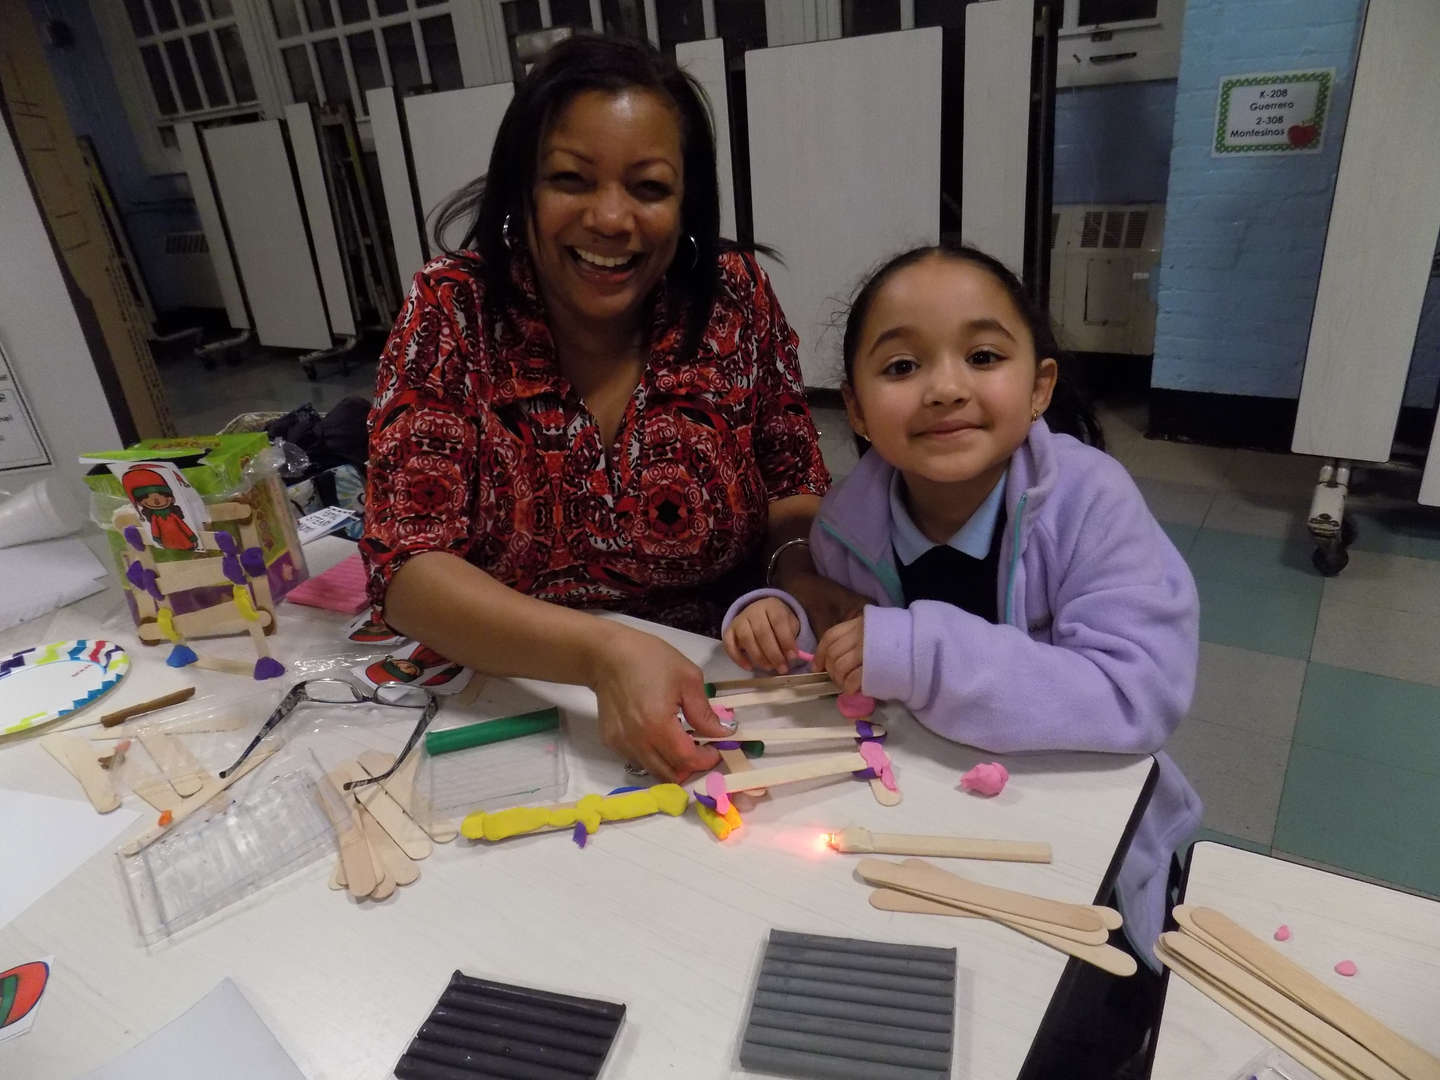 Mother and daughter smiling during STEAM family fun night